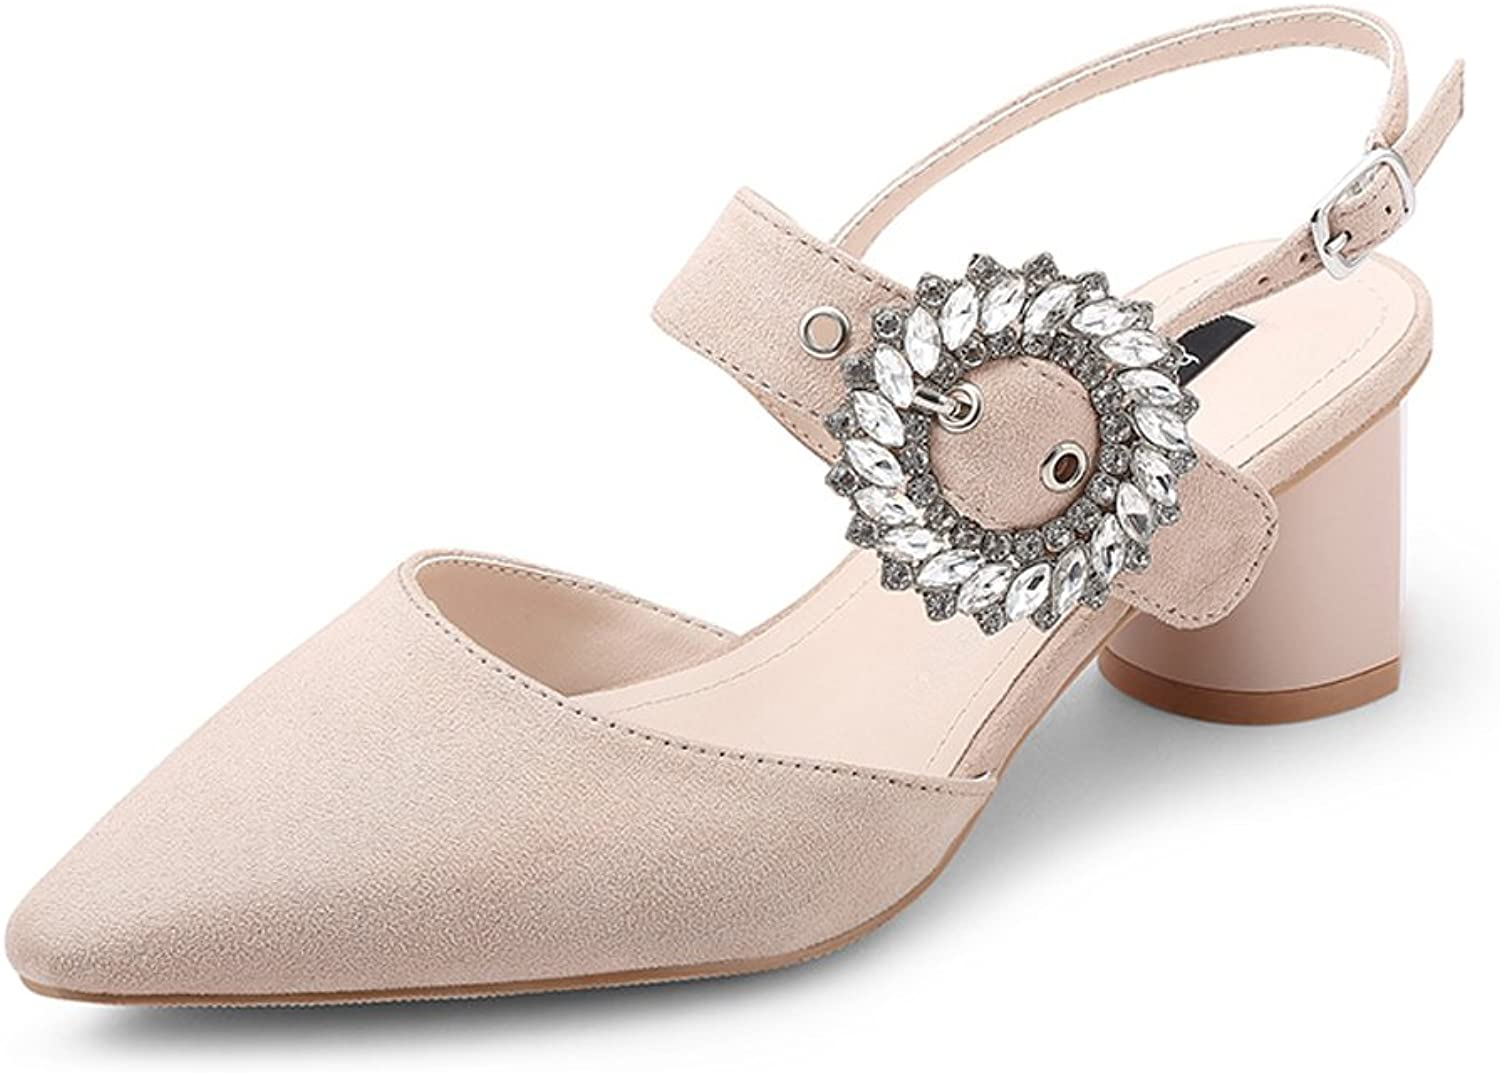 JE shoes Female High Heels Rhinestone Sandals with A Single shoes Korean Version